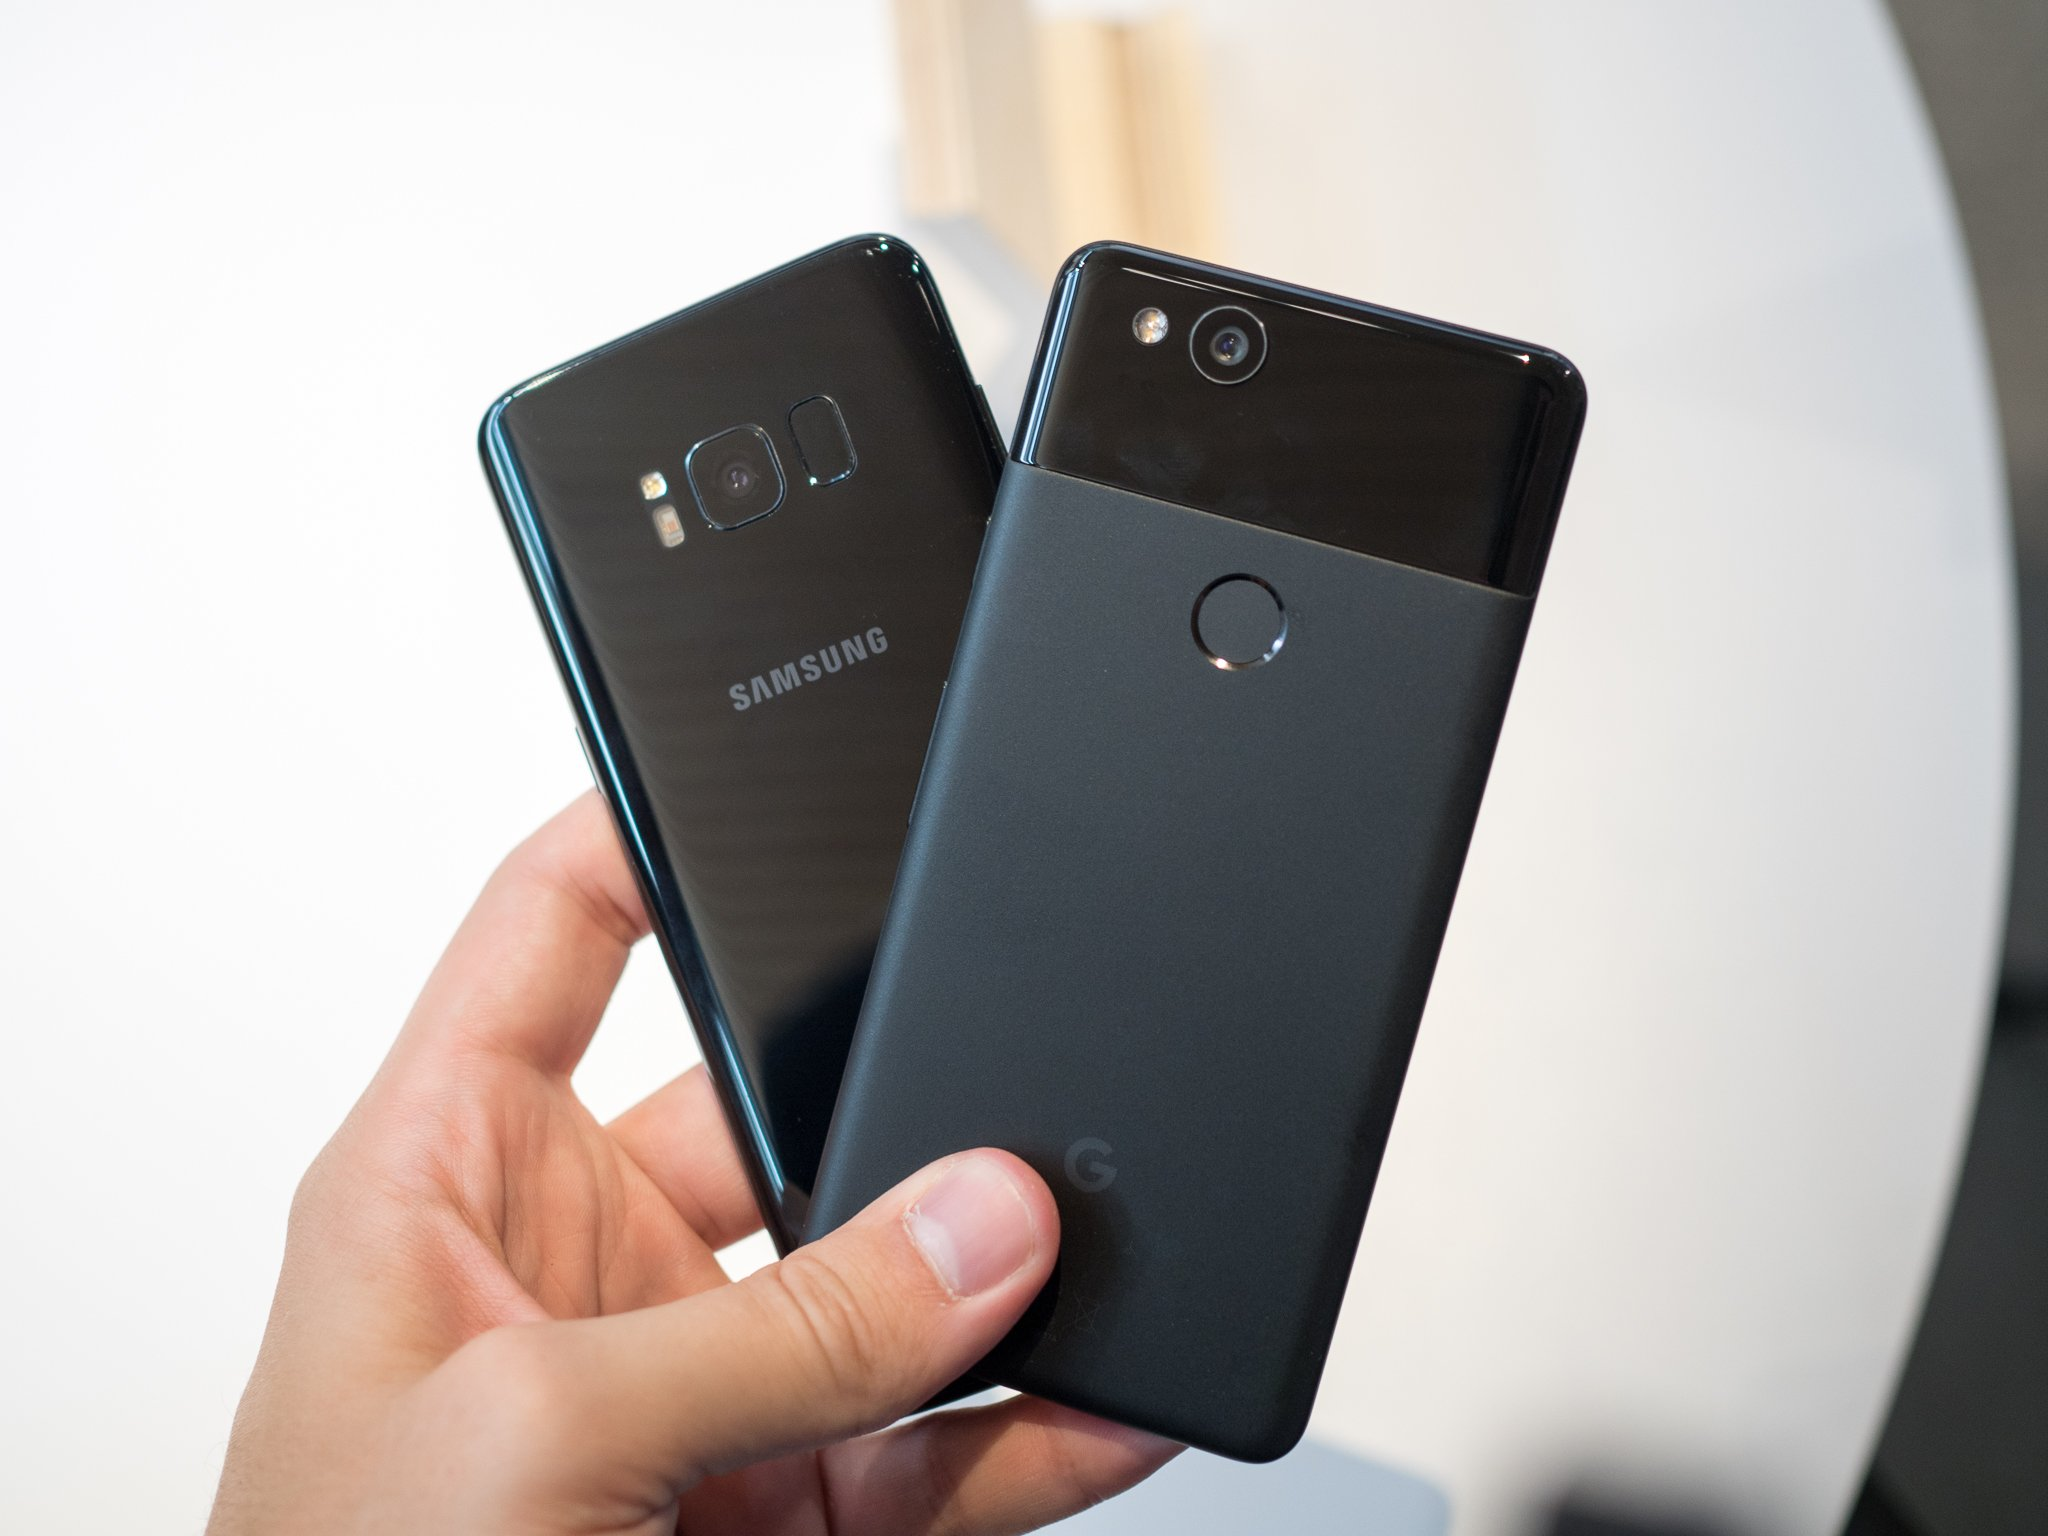 Antique Galaxy Google Pixel Samsung Galaxy Which Should You Buy Galaxy S7 Edge Vs Google Pixel 2 Galaxy S7 Vs Google Pixel Reddit Google Pixel dpreview Galaxy S7 Vs Google Pixel